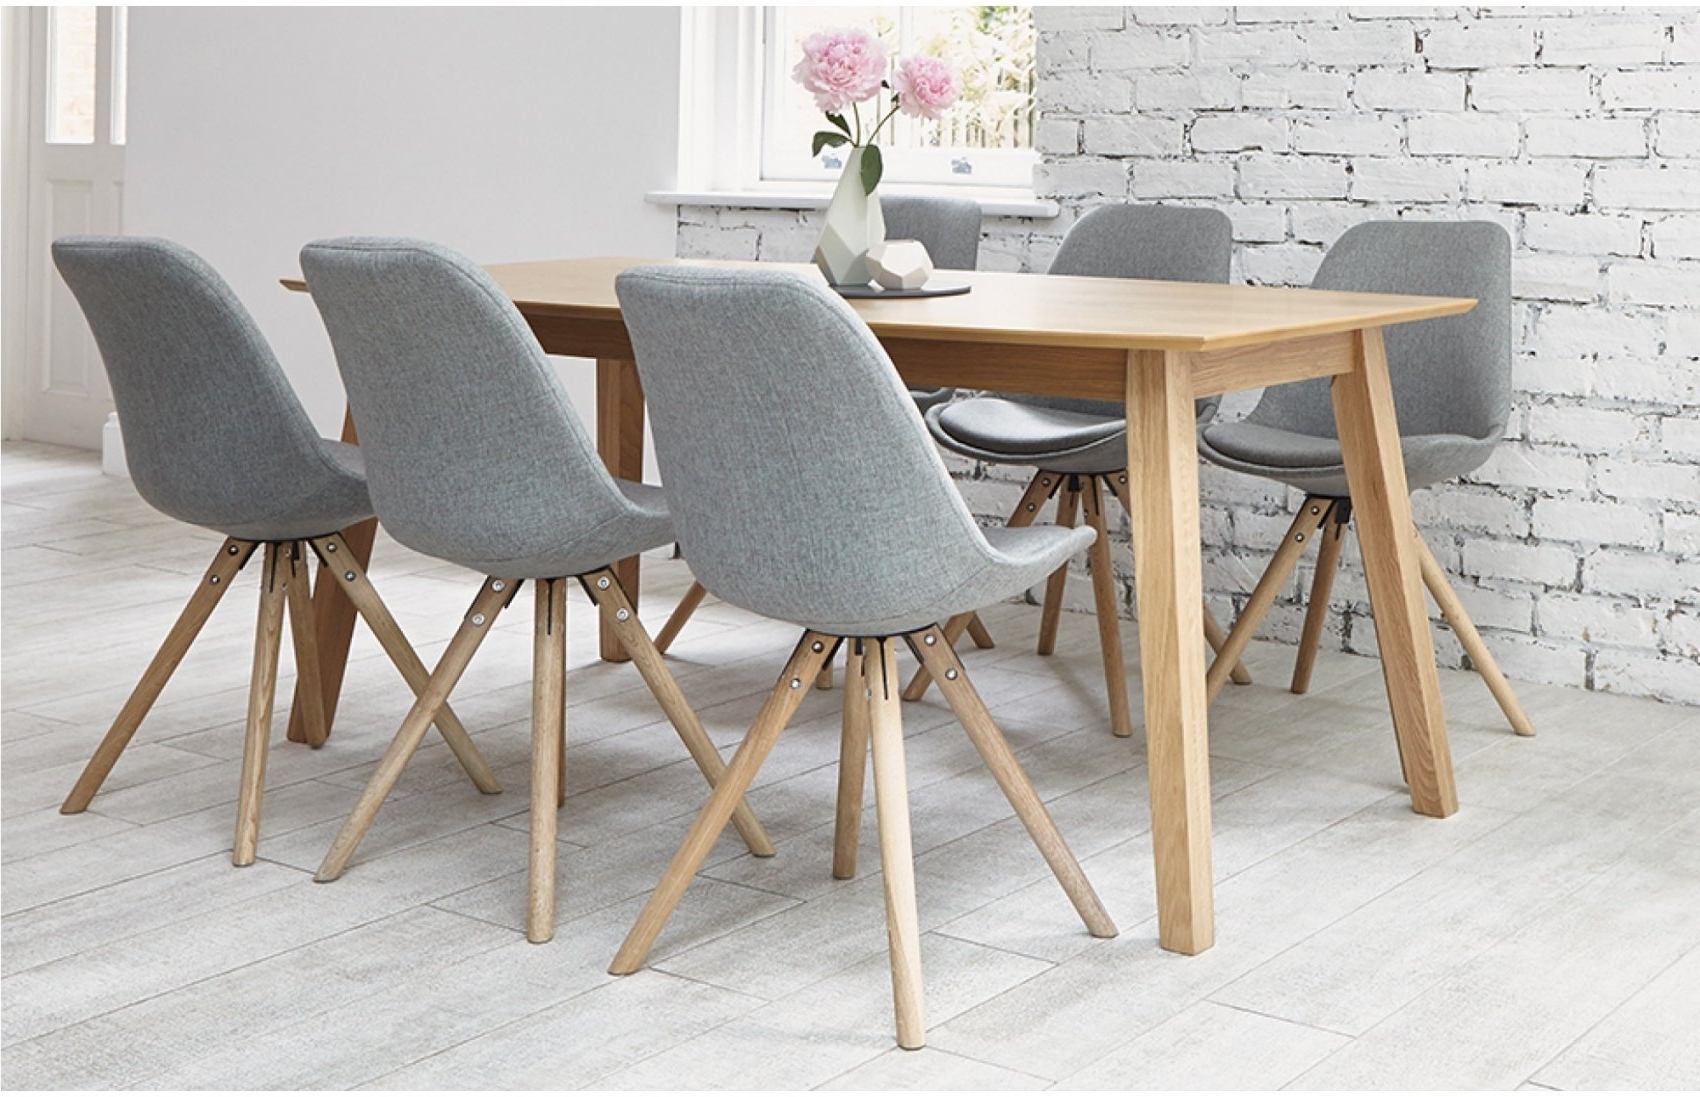 6 Seater Dining Table Sets - Castrophotos with regard to Widely used 6 Seat Dining Table Sets